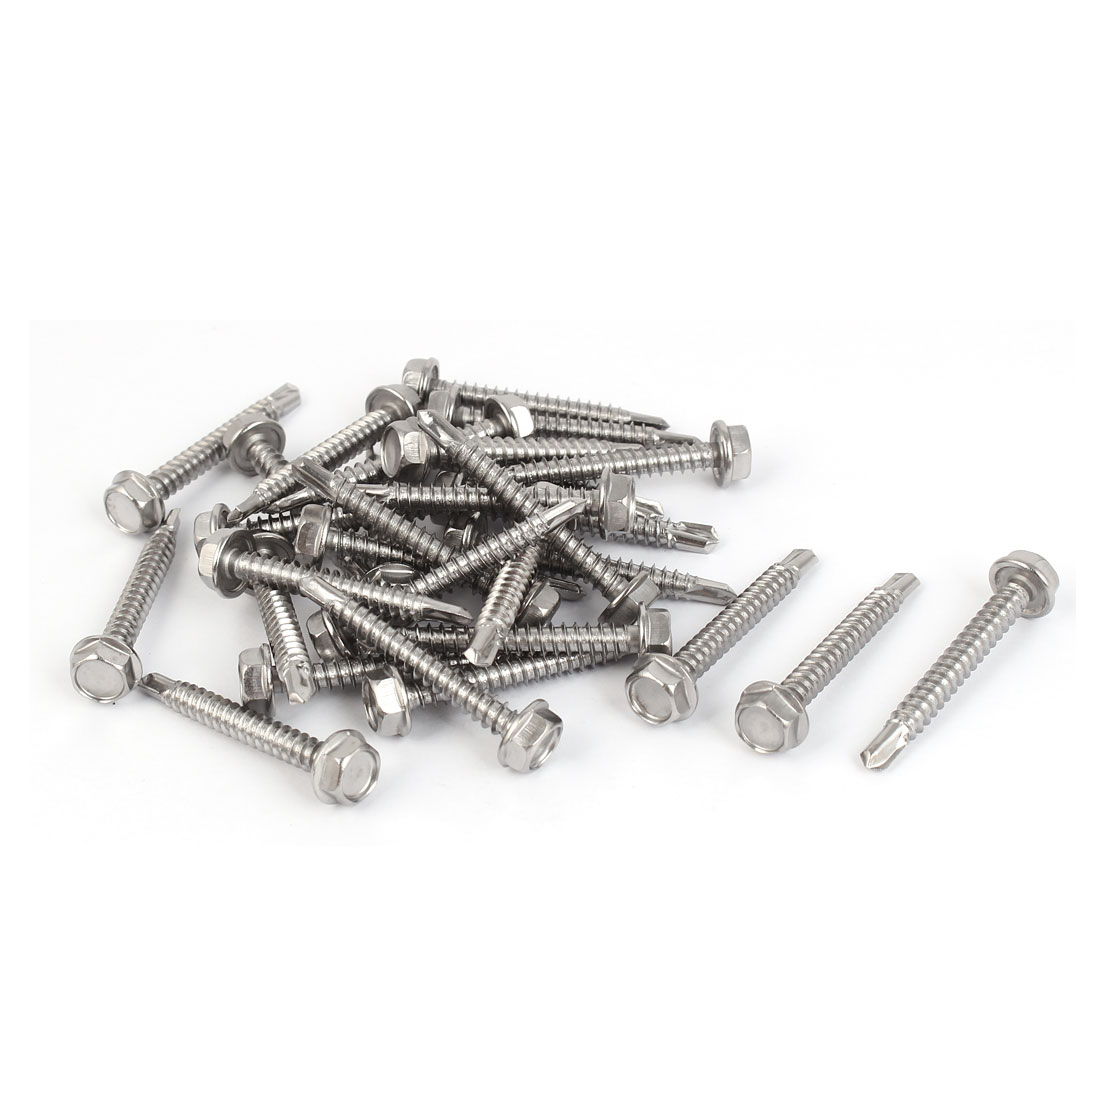 M4.8x38mm #10-16 Thread 410 Stainless Steel Hex Head Self Drilling Screws 30 Pcs